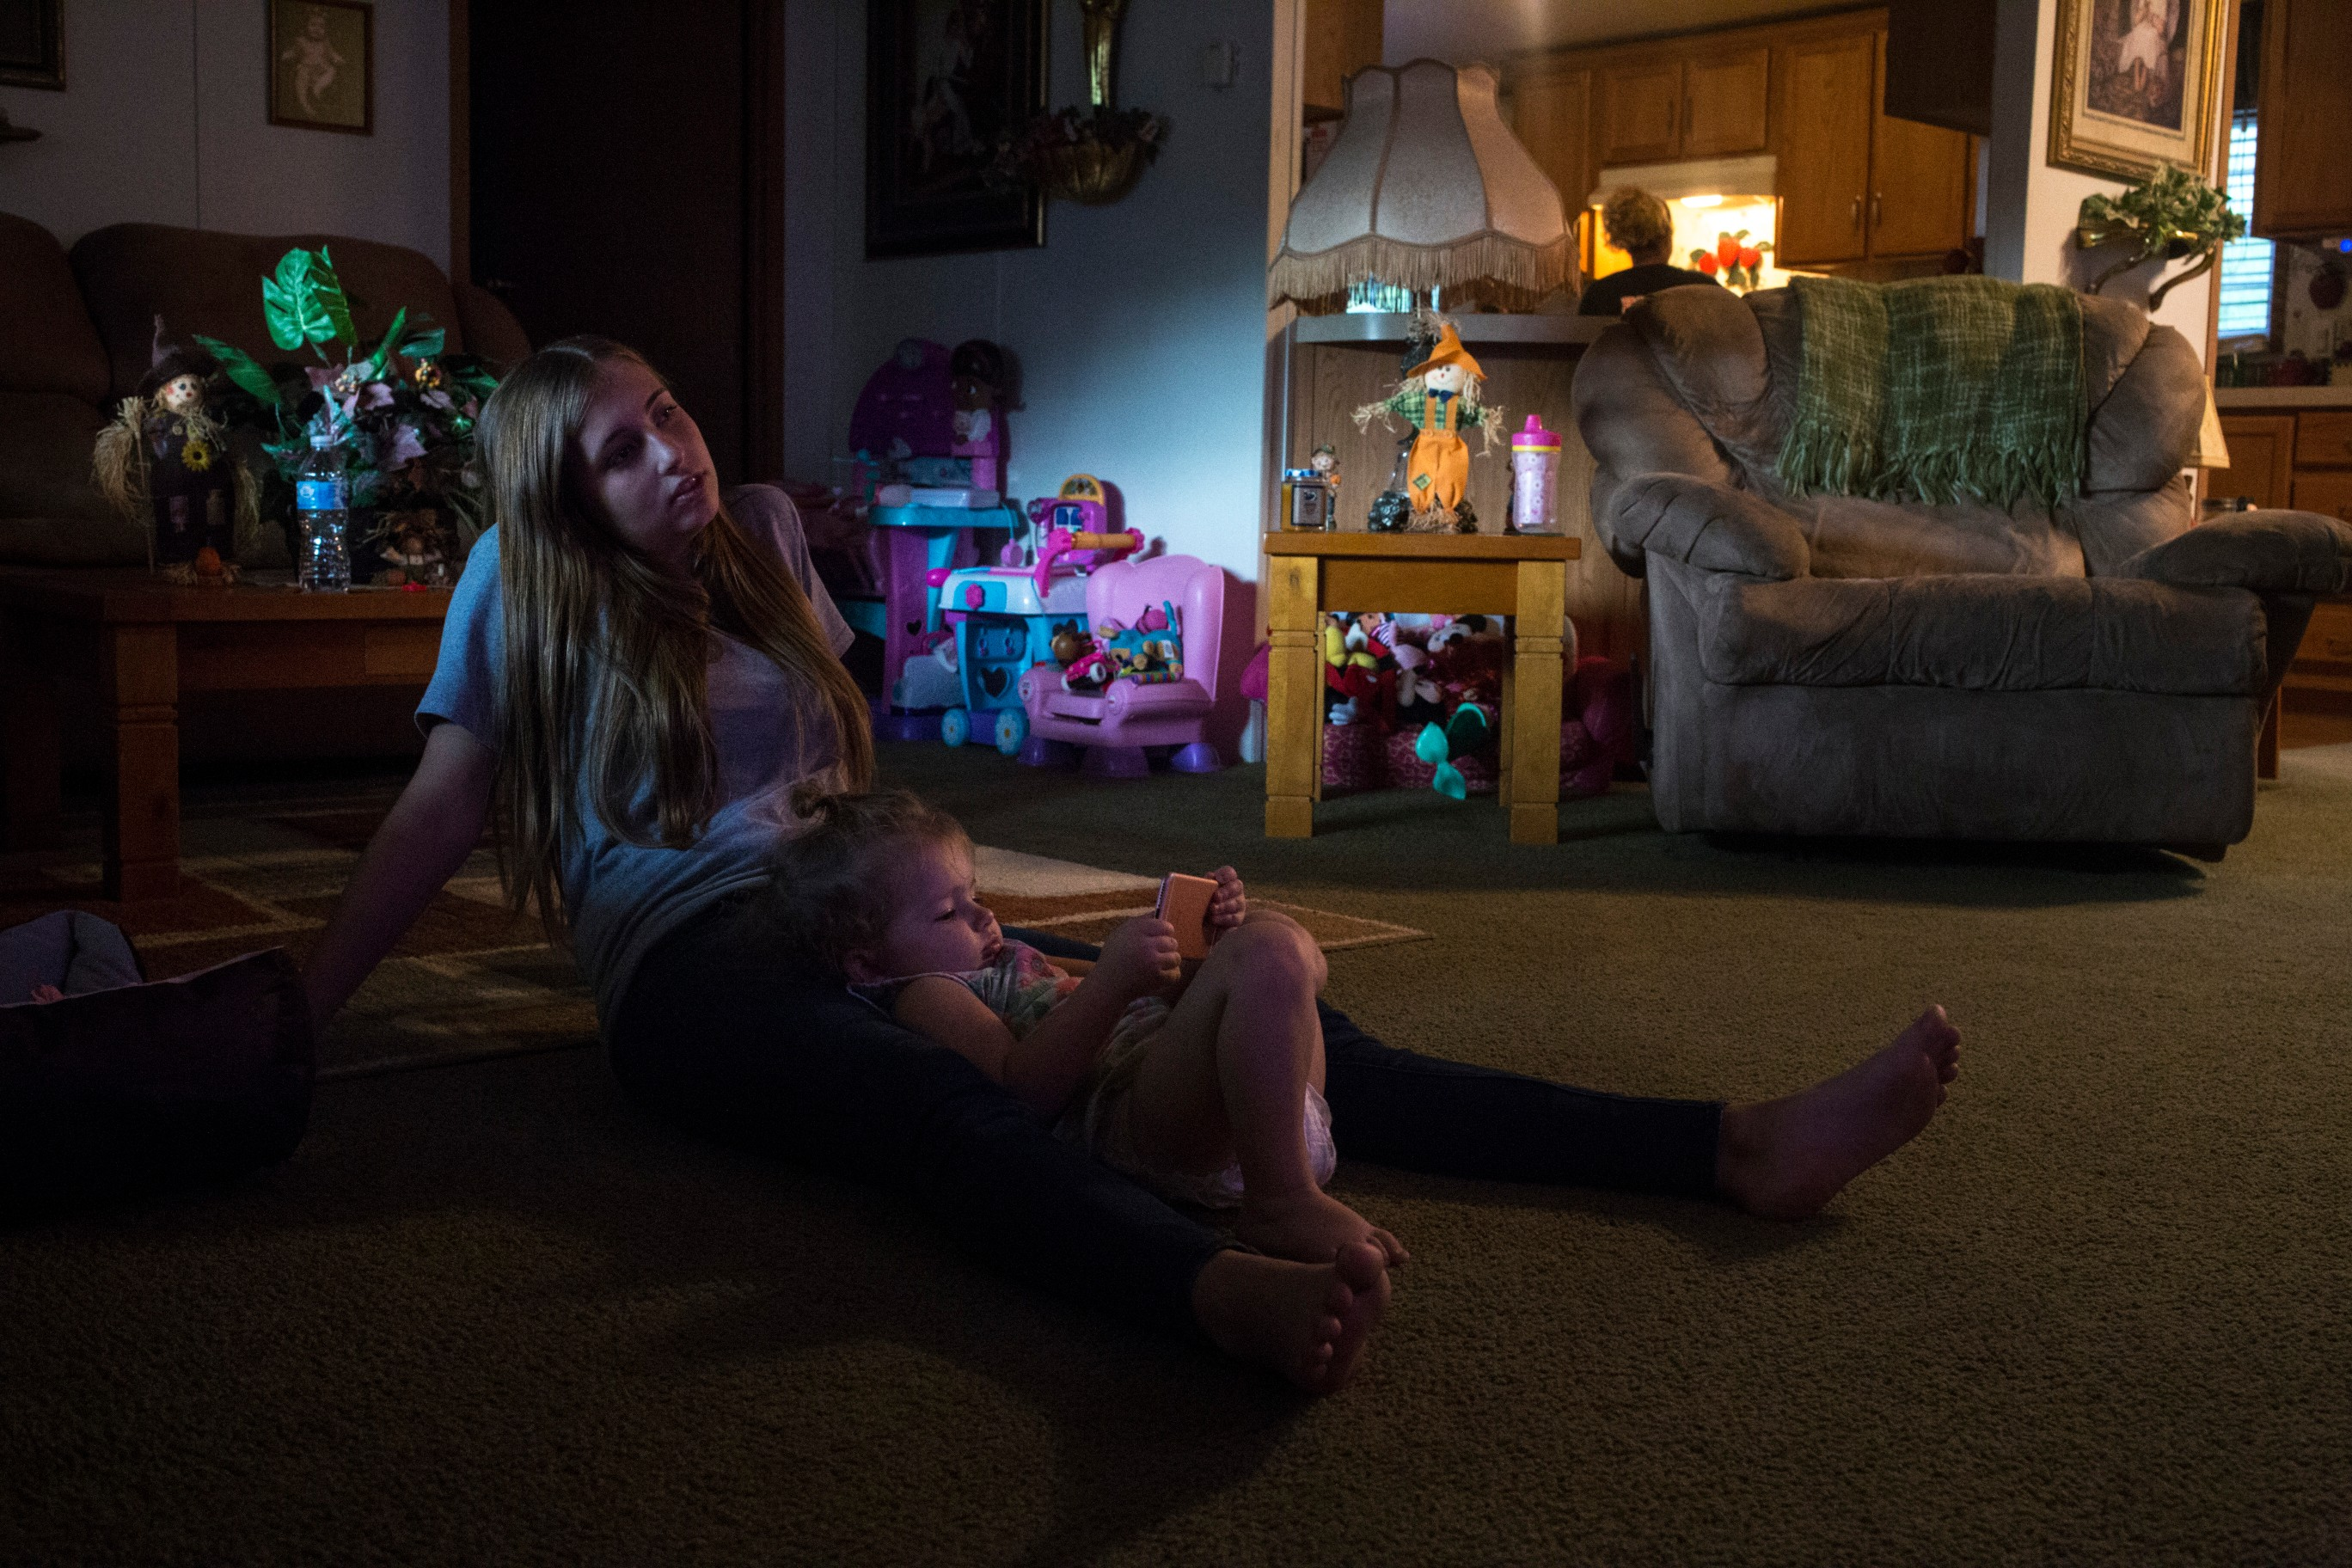 "Haley Jarvis, 17, watches ""Sing,"" a children's movie, with her daughter Paisley, 2, at her boyfriend's home in Langley, Ky., on Tuesday, September 26, 2017. (Photo by Brittany Greeson/GroundTruth)"